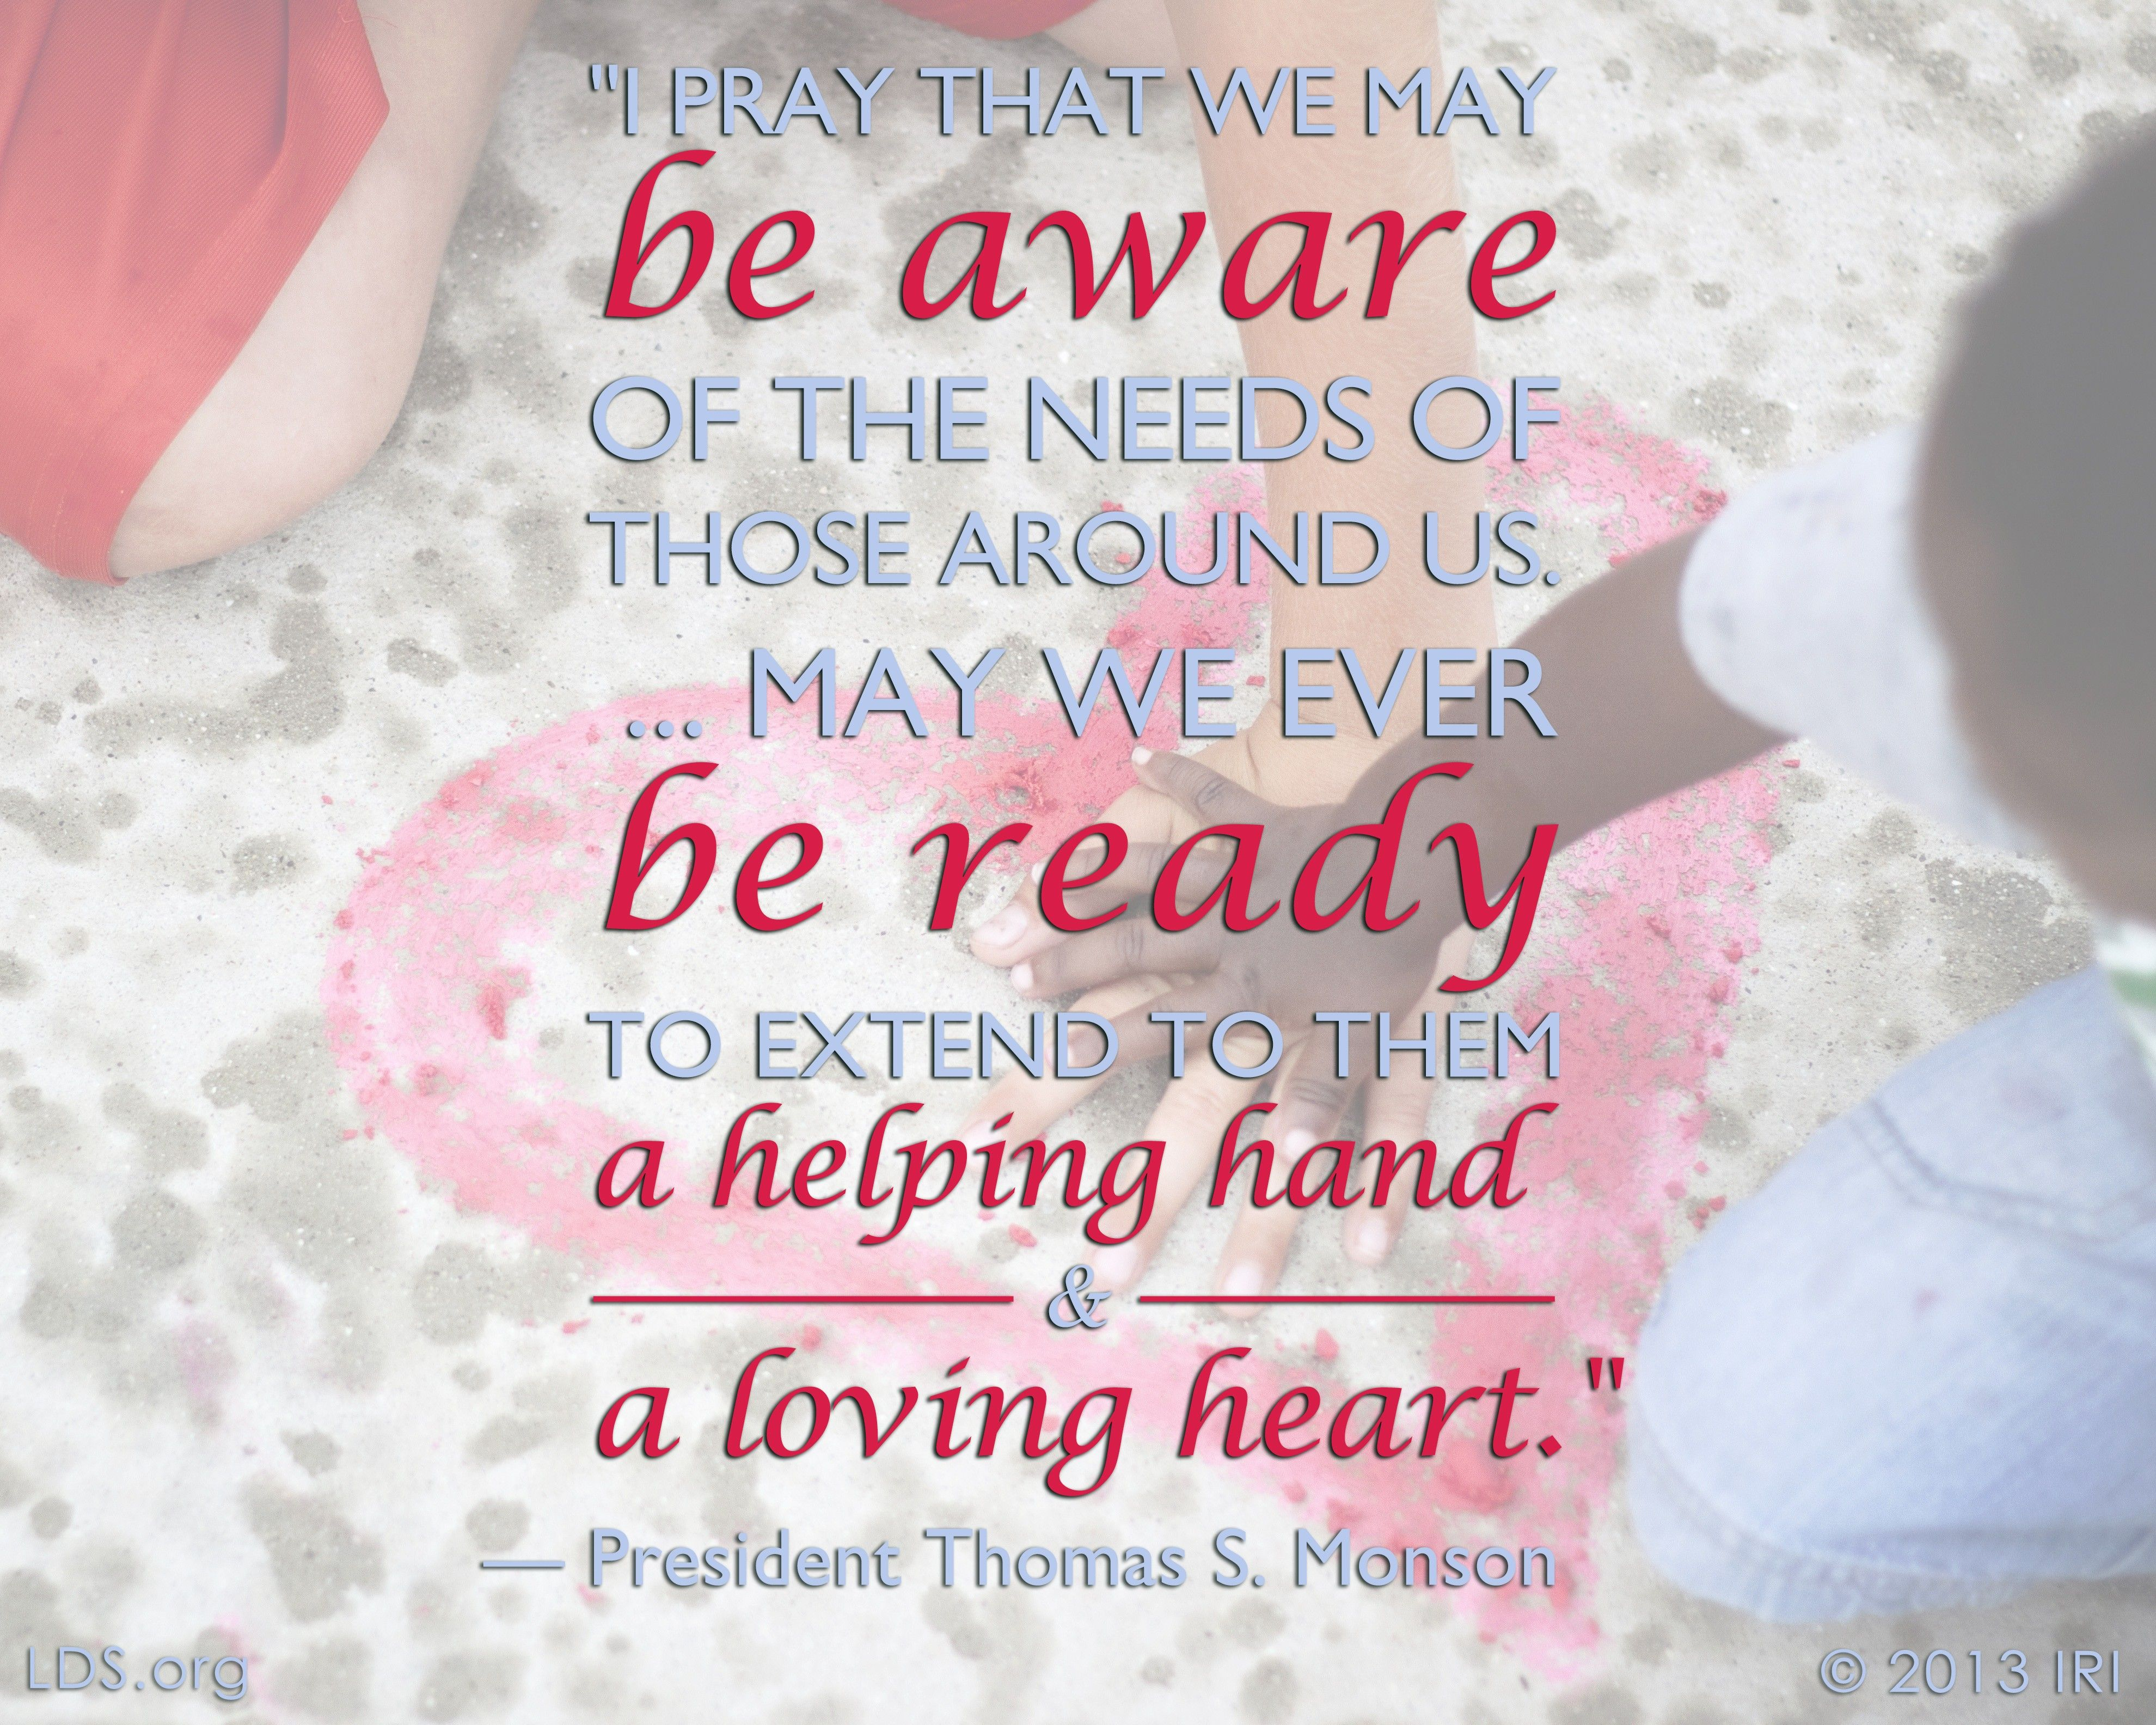 """""""I pray that we may be aware of the needs of those around us. … May we ever be ready to extend to them a helping hand and a loving heart.""""—President Thomas S. Monson, """"Until We Meet Again"""""""